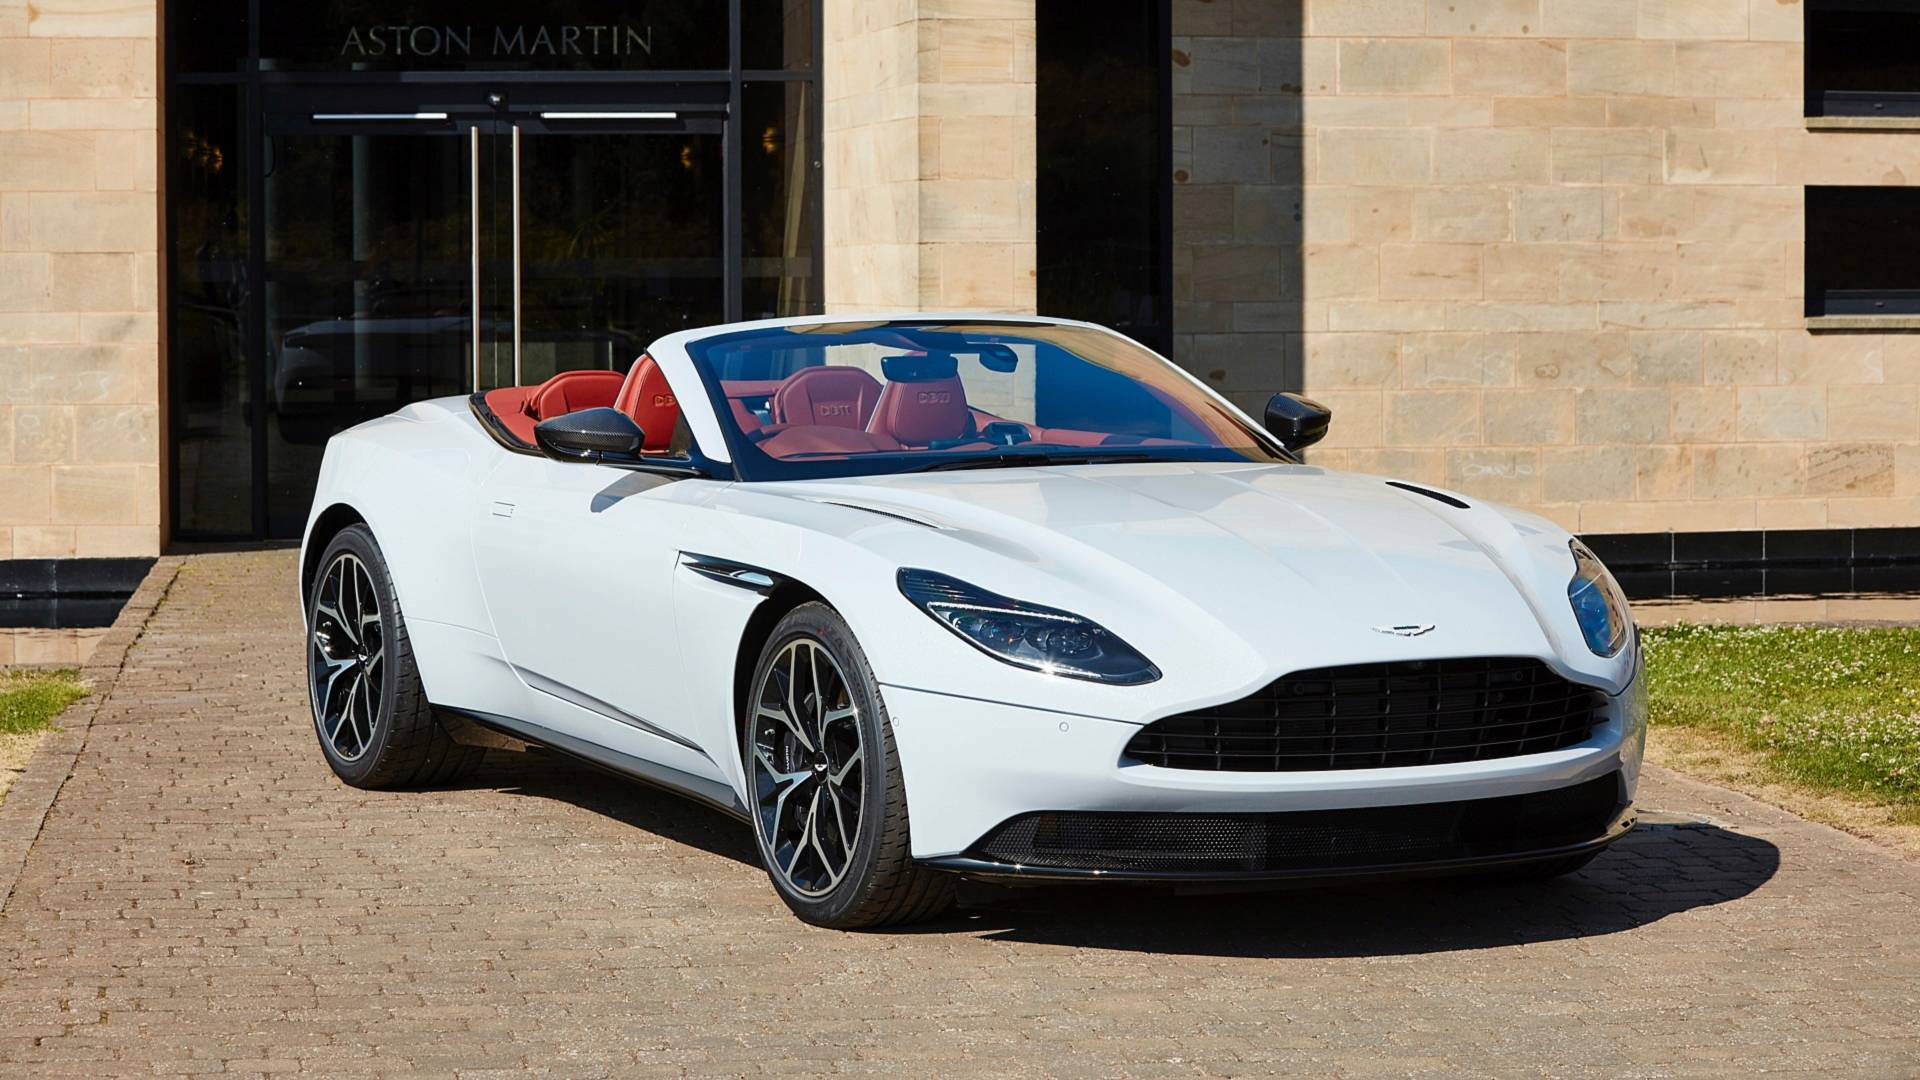 q-by-aston-martin-special-editions (3)